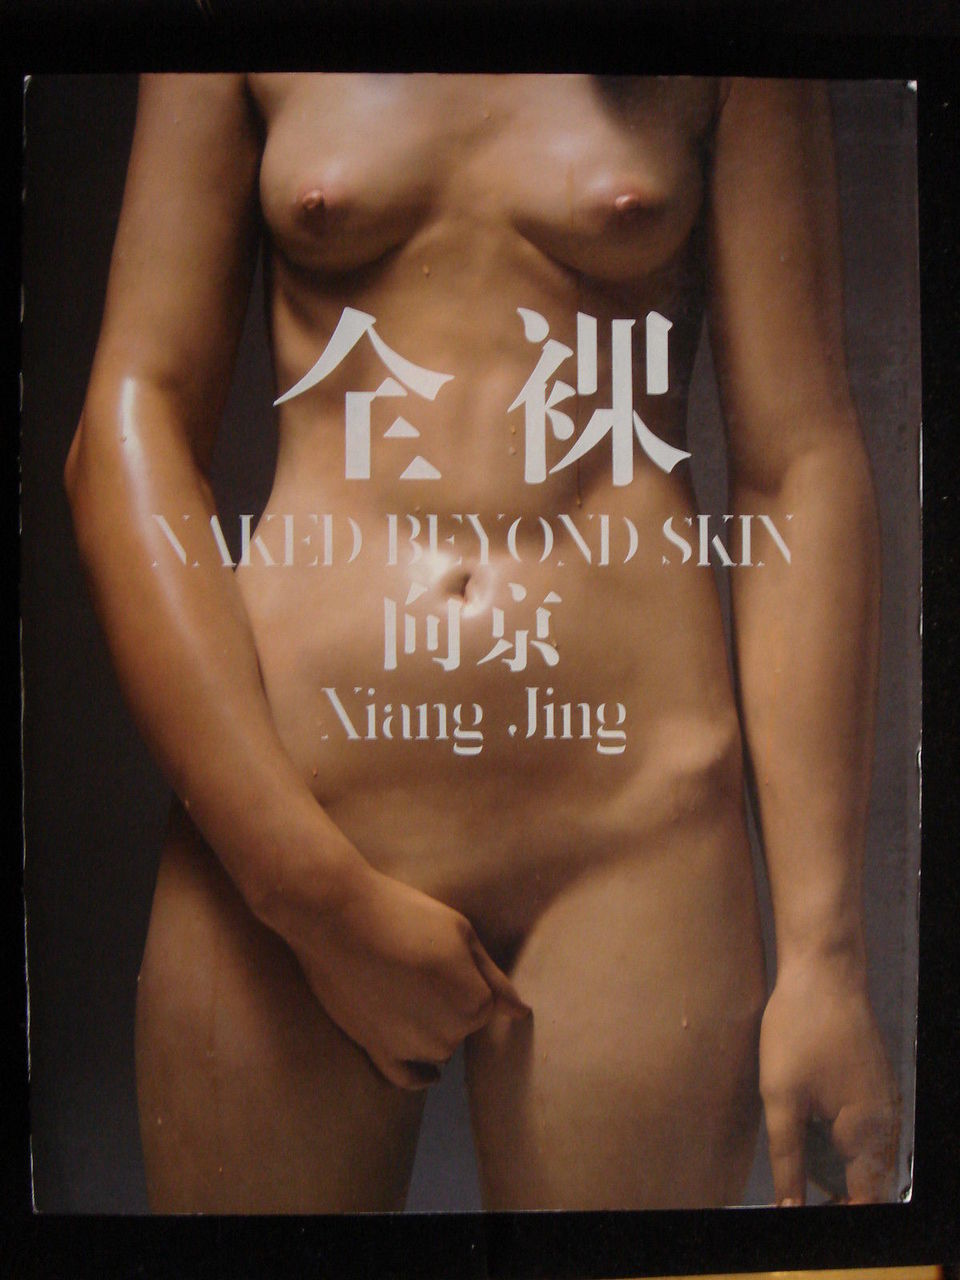 NAKED BEYOND SKIN, by Xiang Jing - 2008